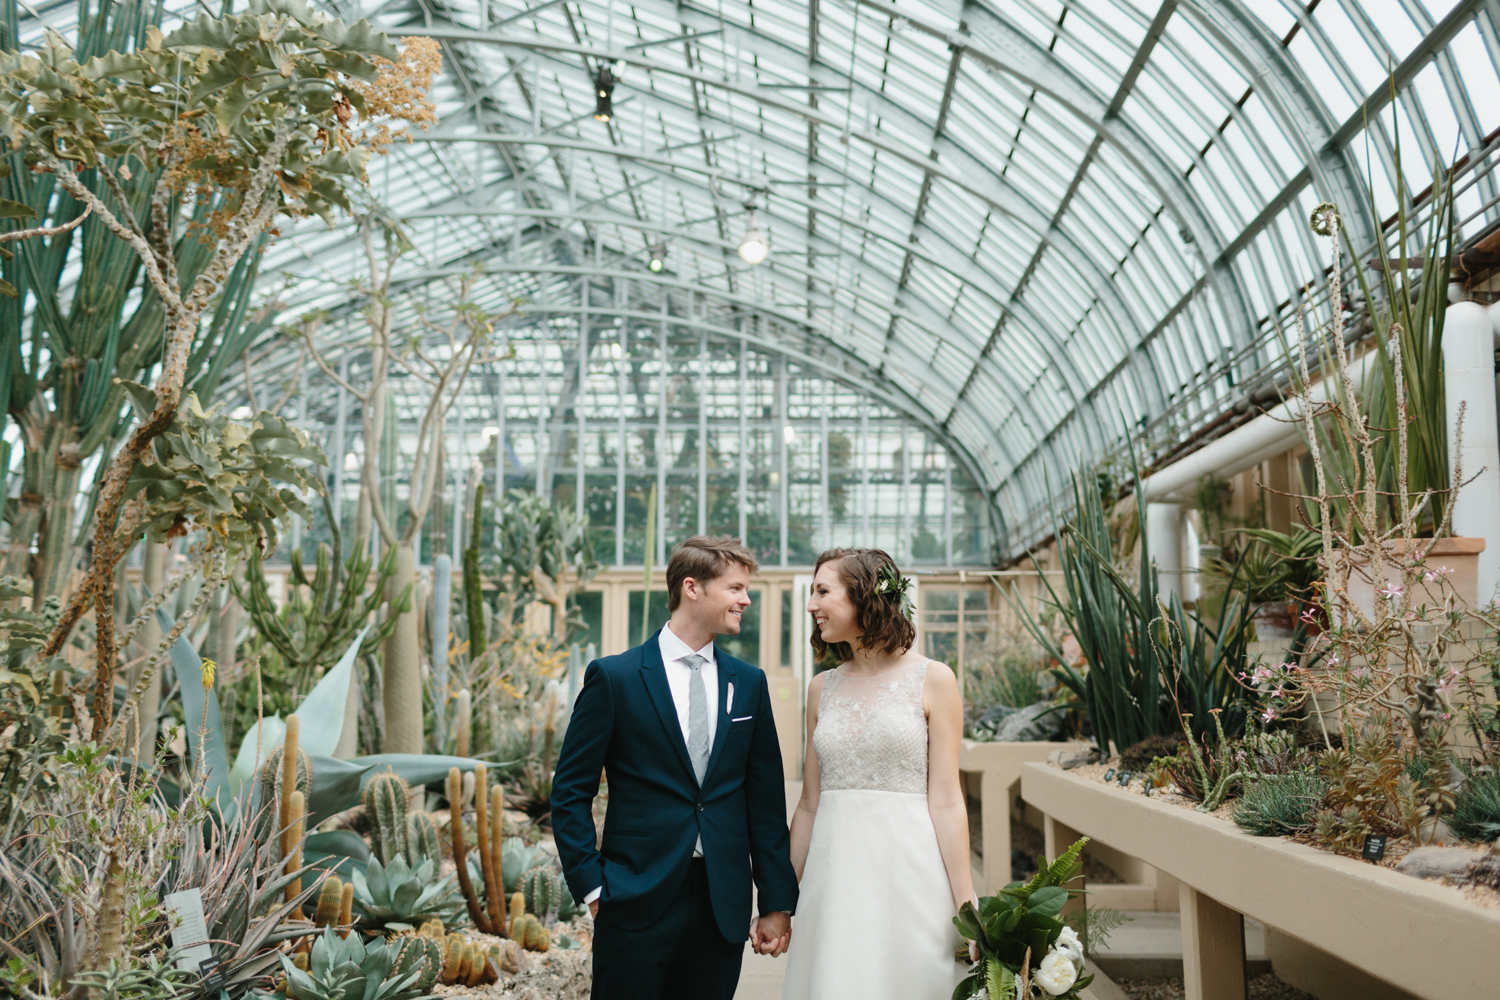 Chicago Garfield Park Conservatory Wedding by Northern Michigan Photographer Mae Stier-051.jpg